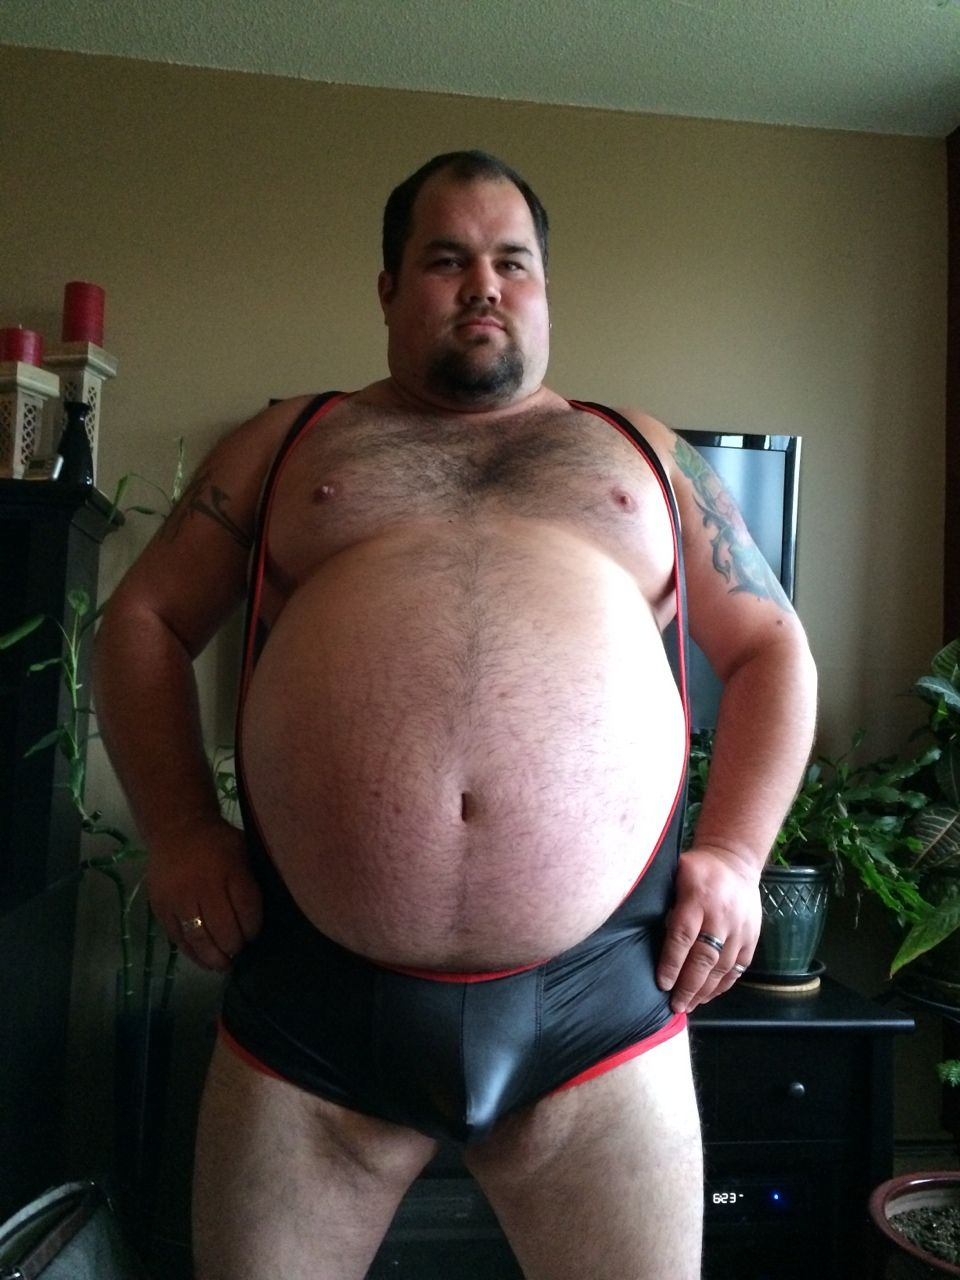 Gainer fat chubby boy can